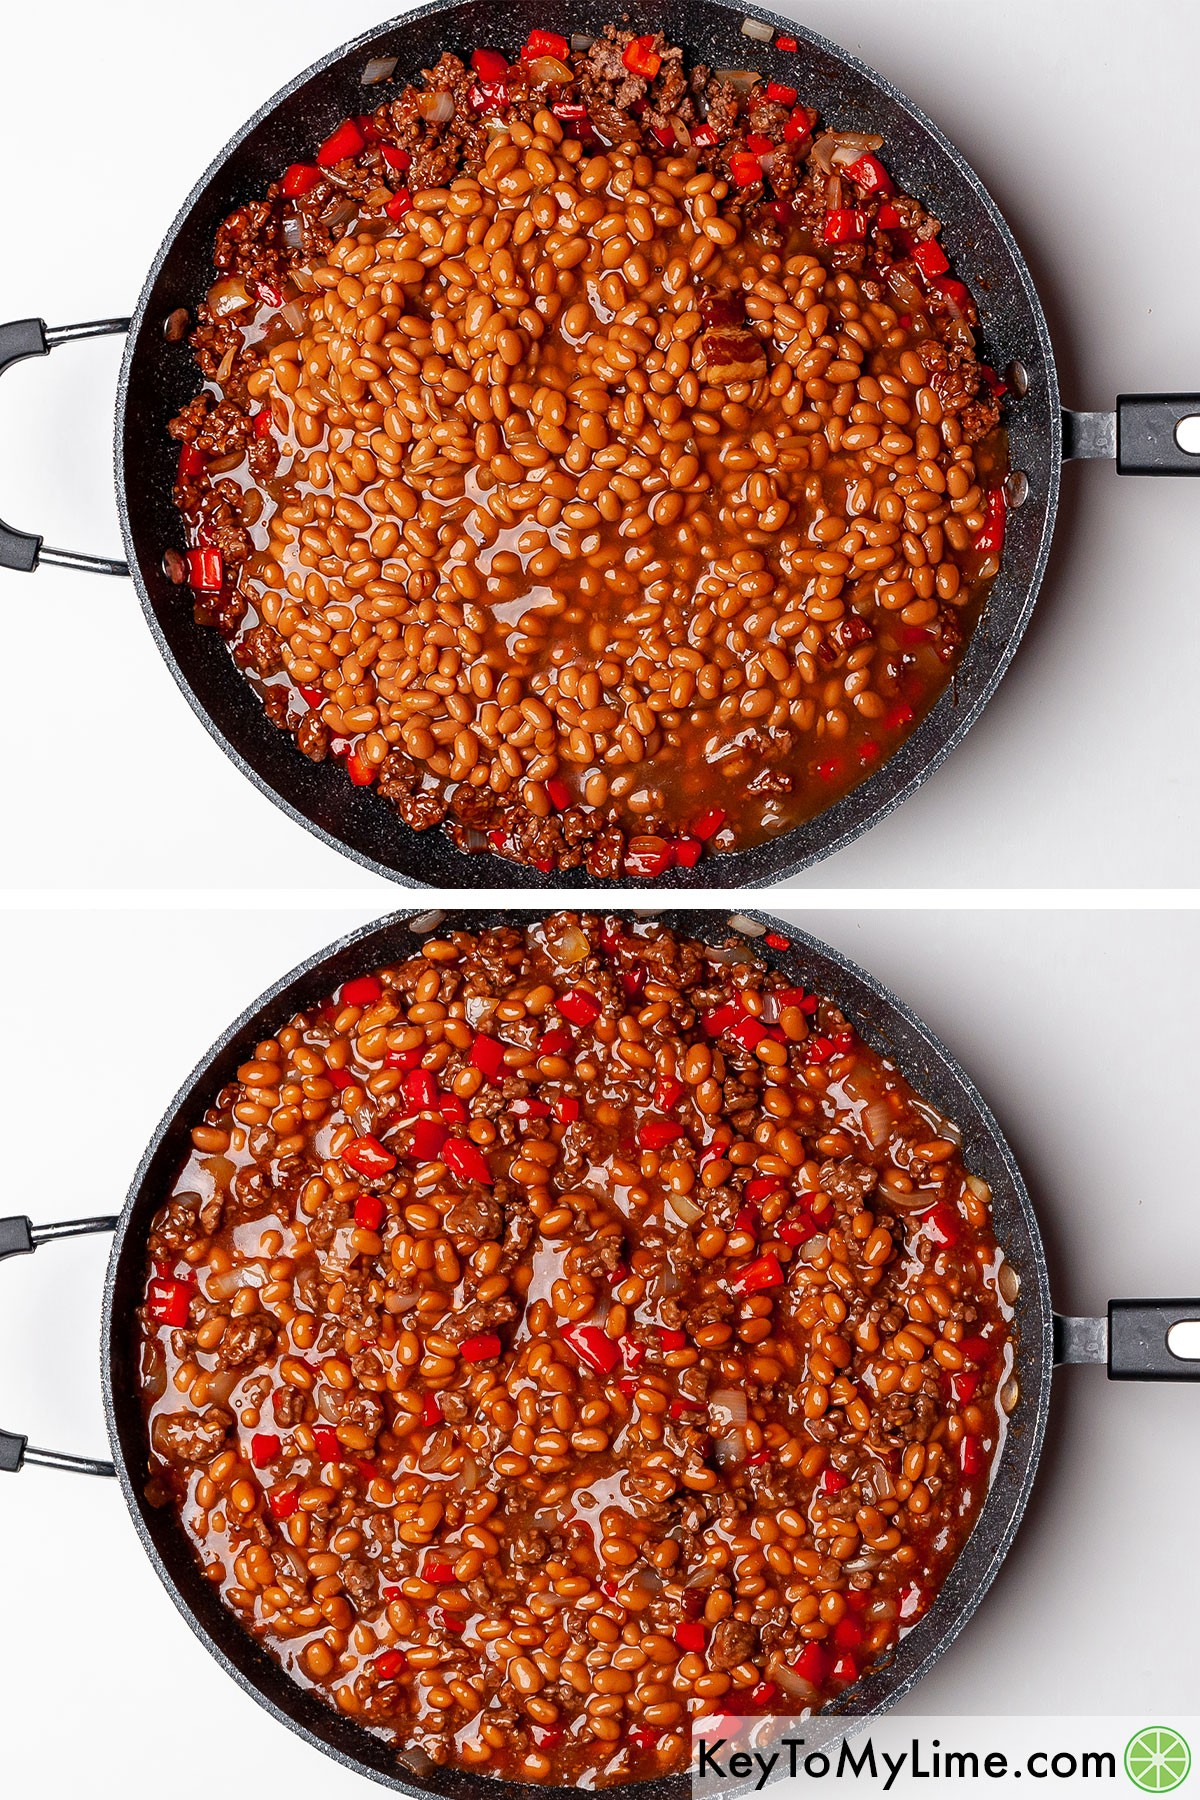 Mixing baked beans into BBQ ground beef.